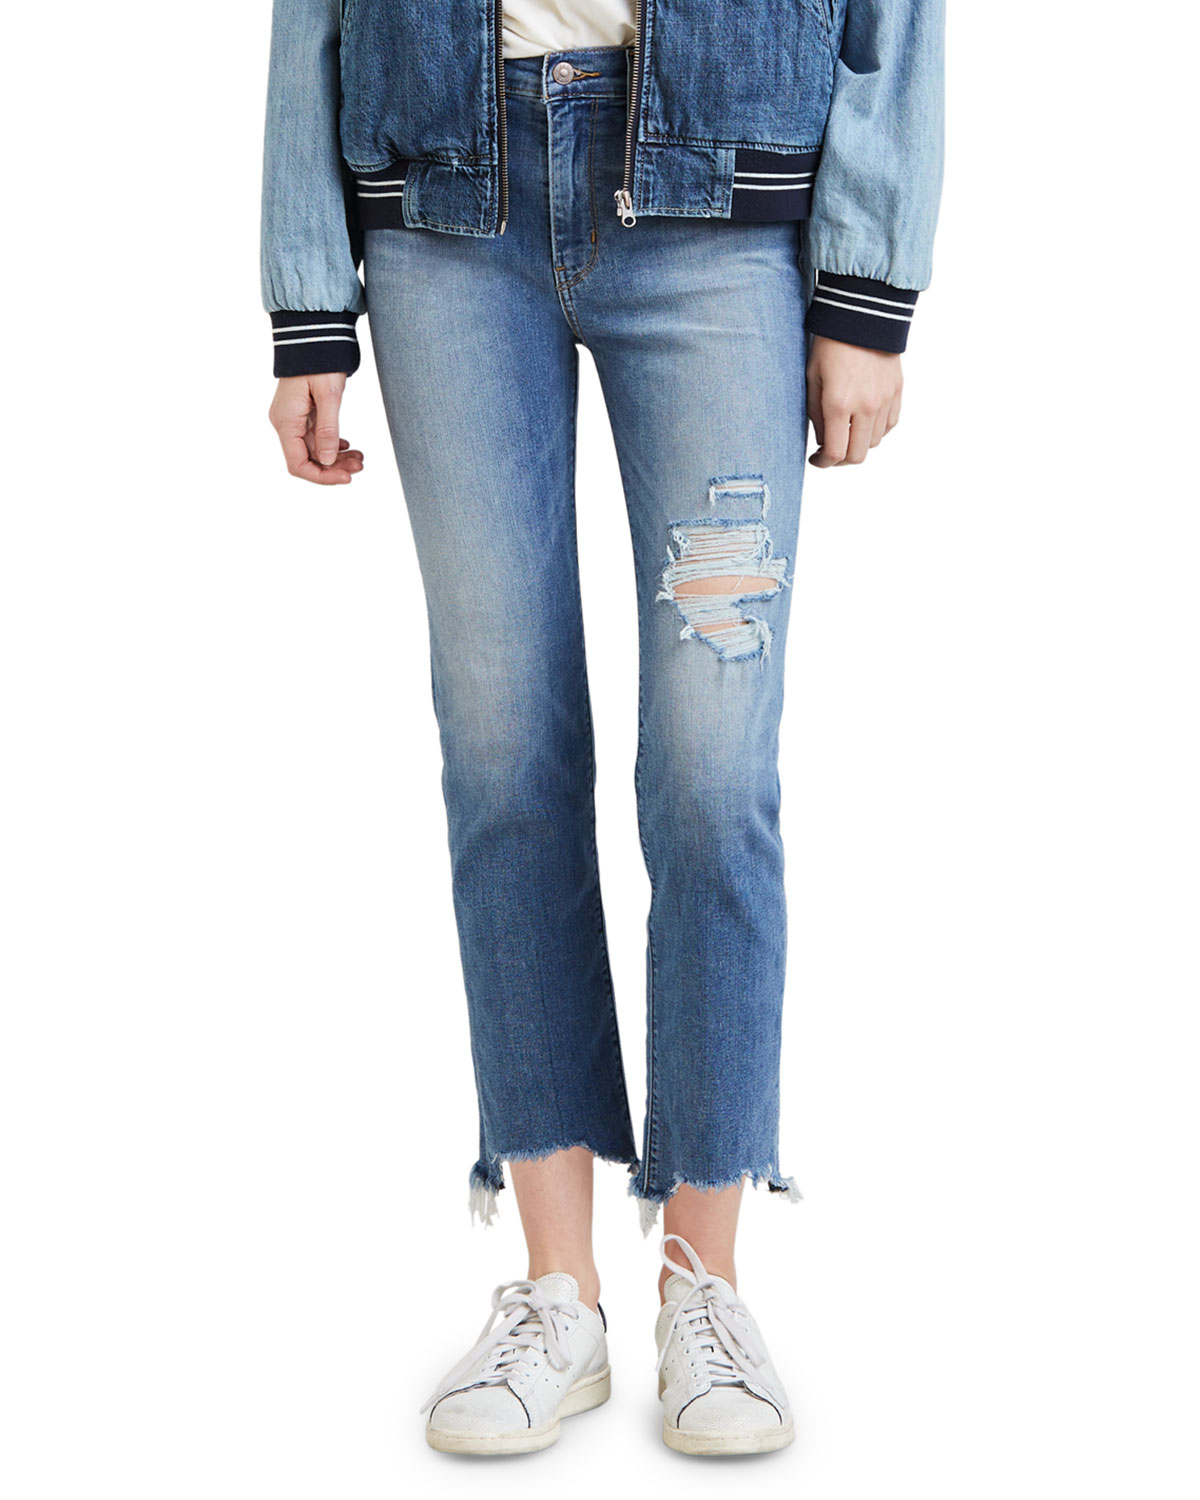 c37fc662 Levi's Premium 724 High-Rise Distressed Straight Cropped Jeans ...